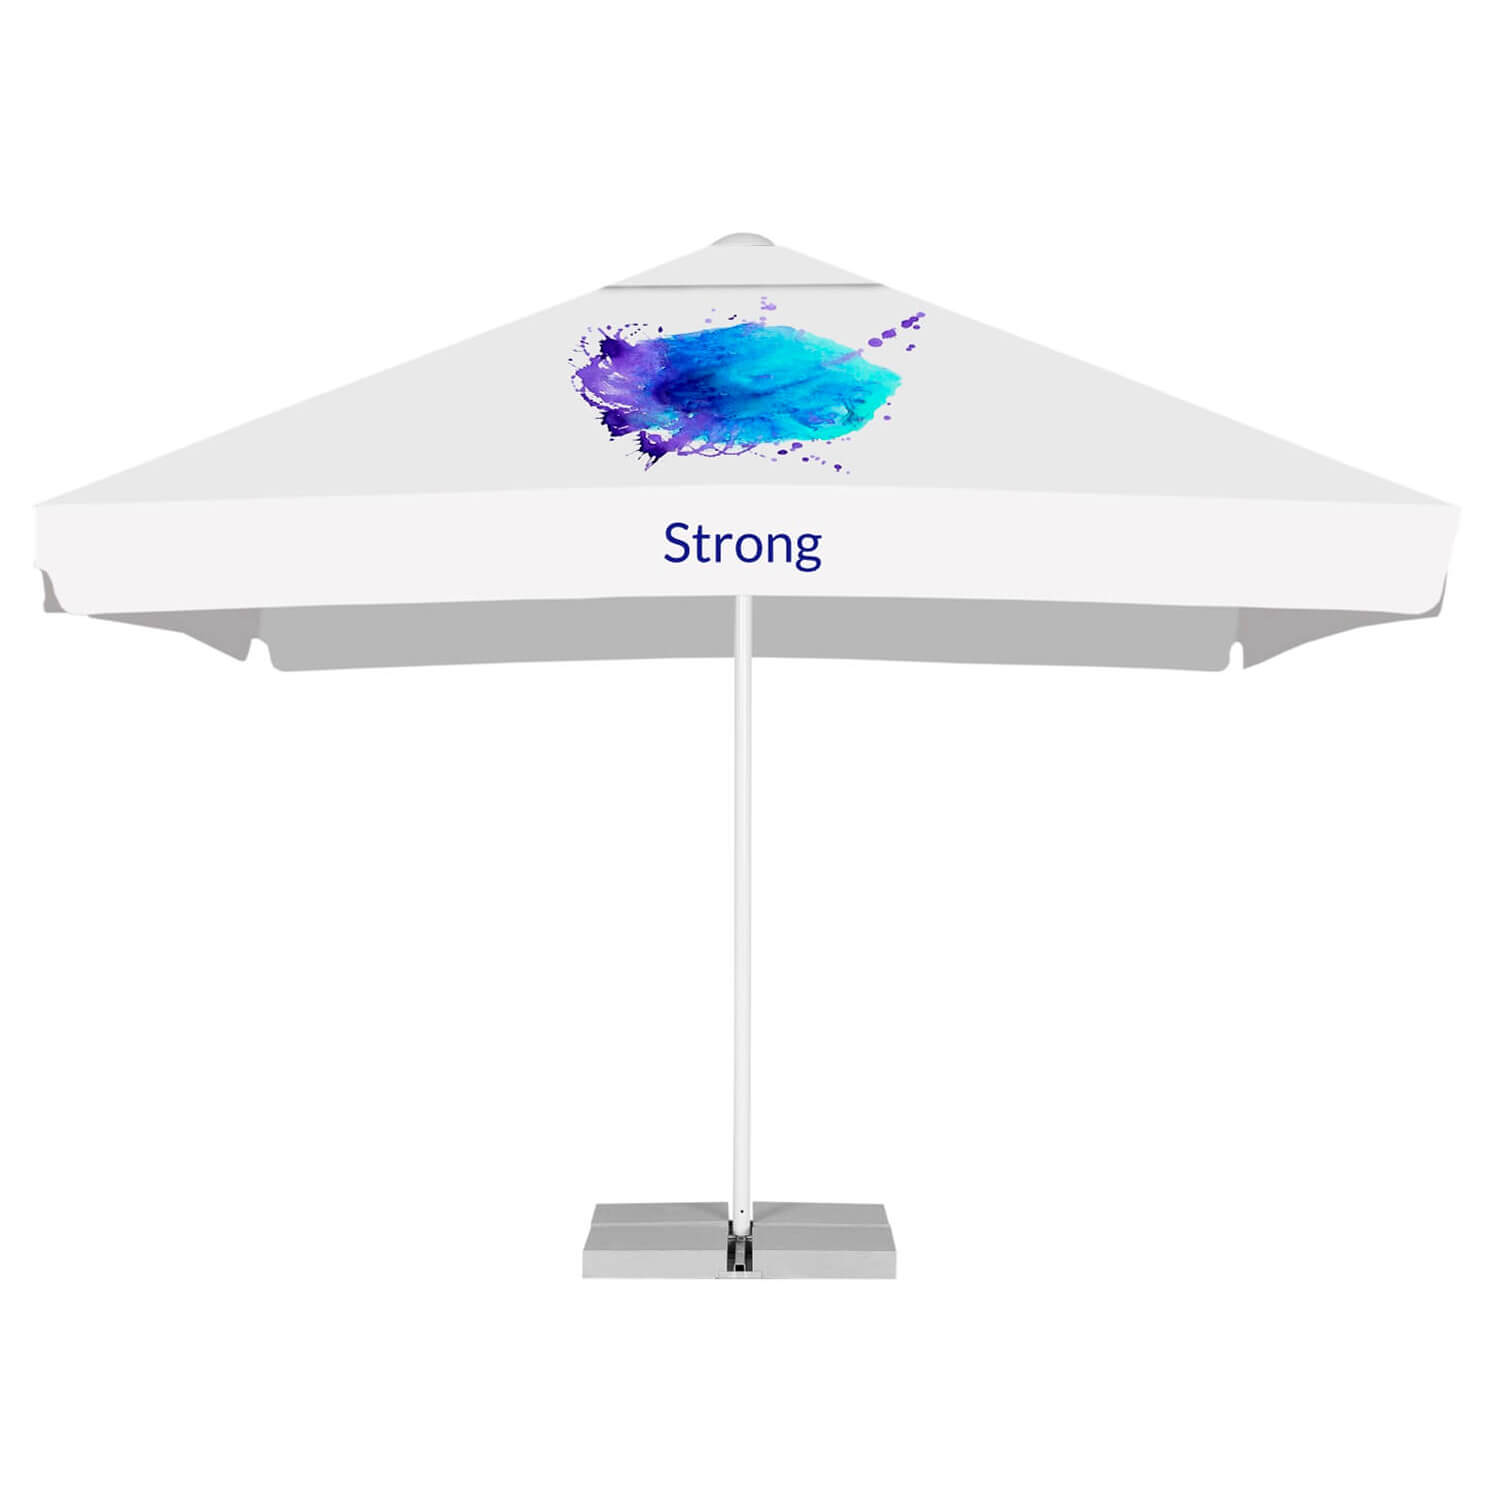 8. Strong rectangular parasol